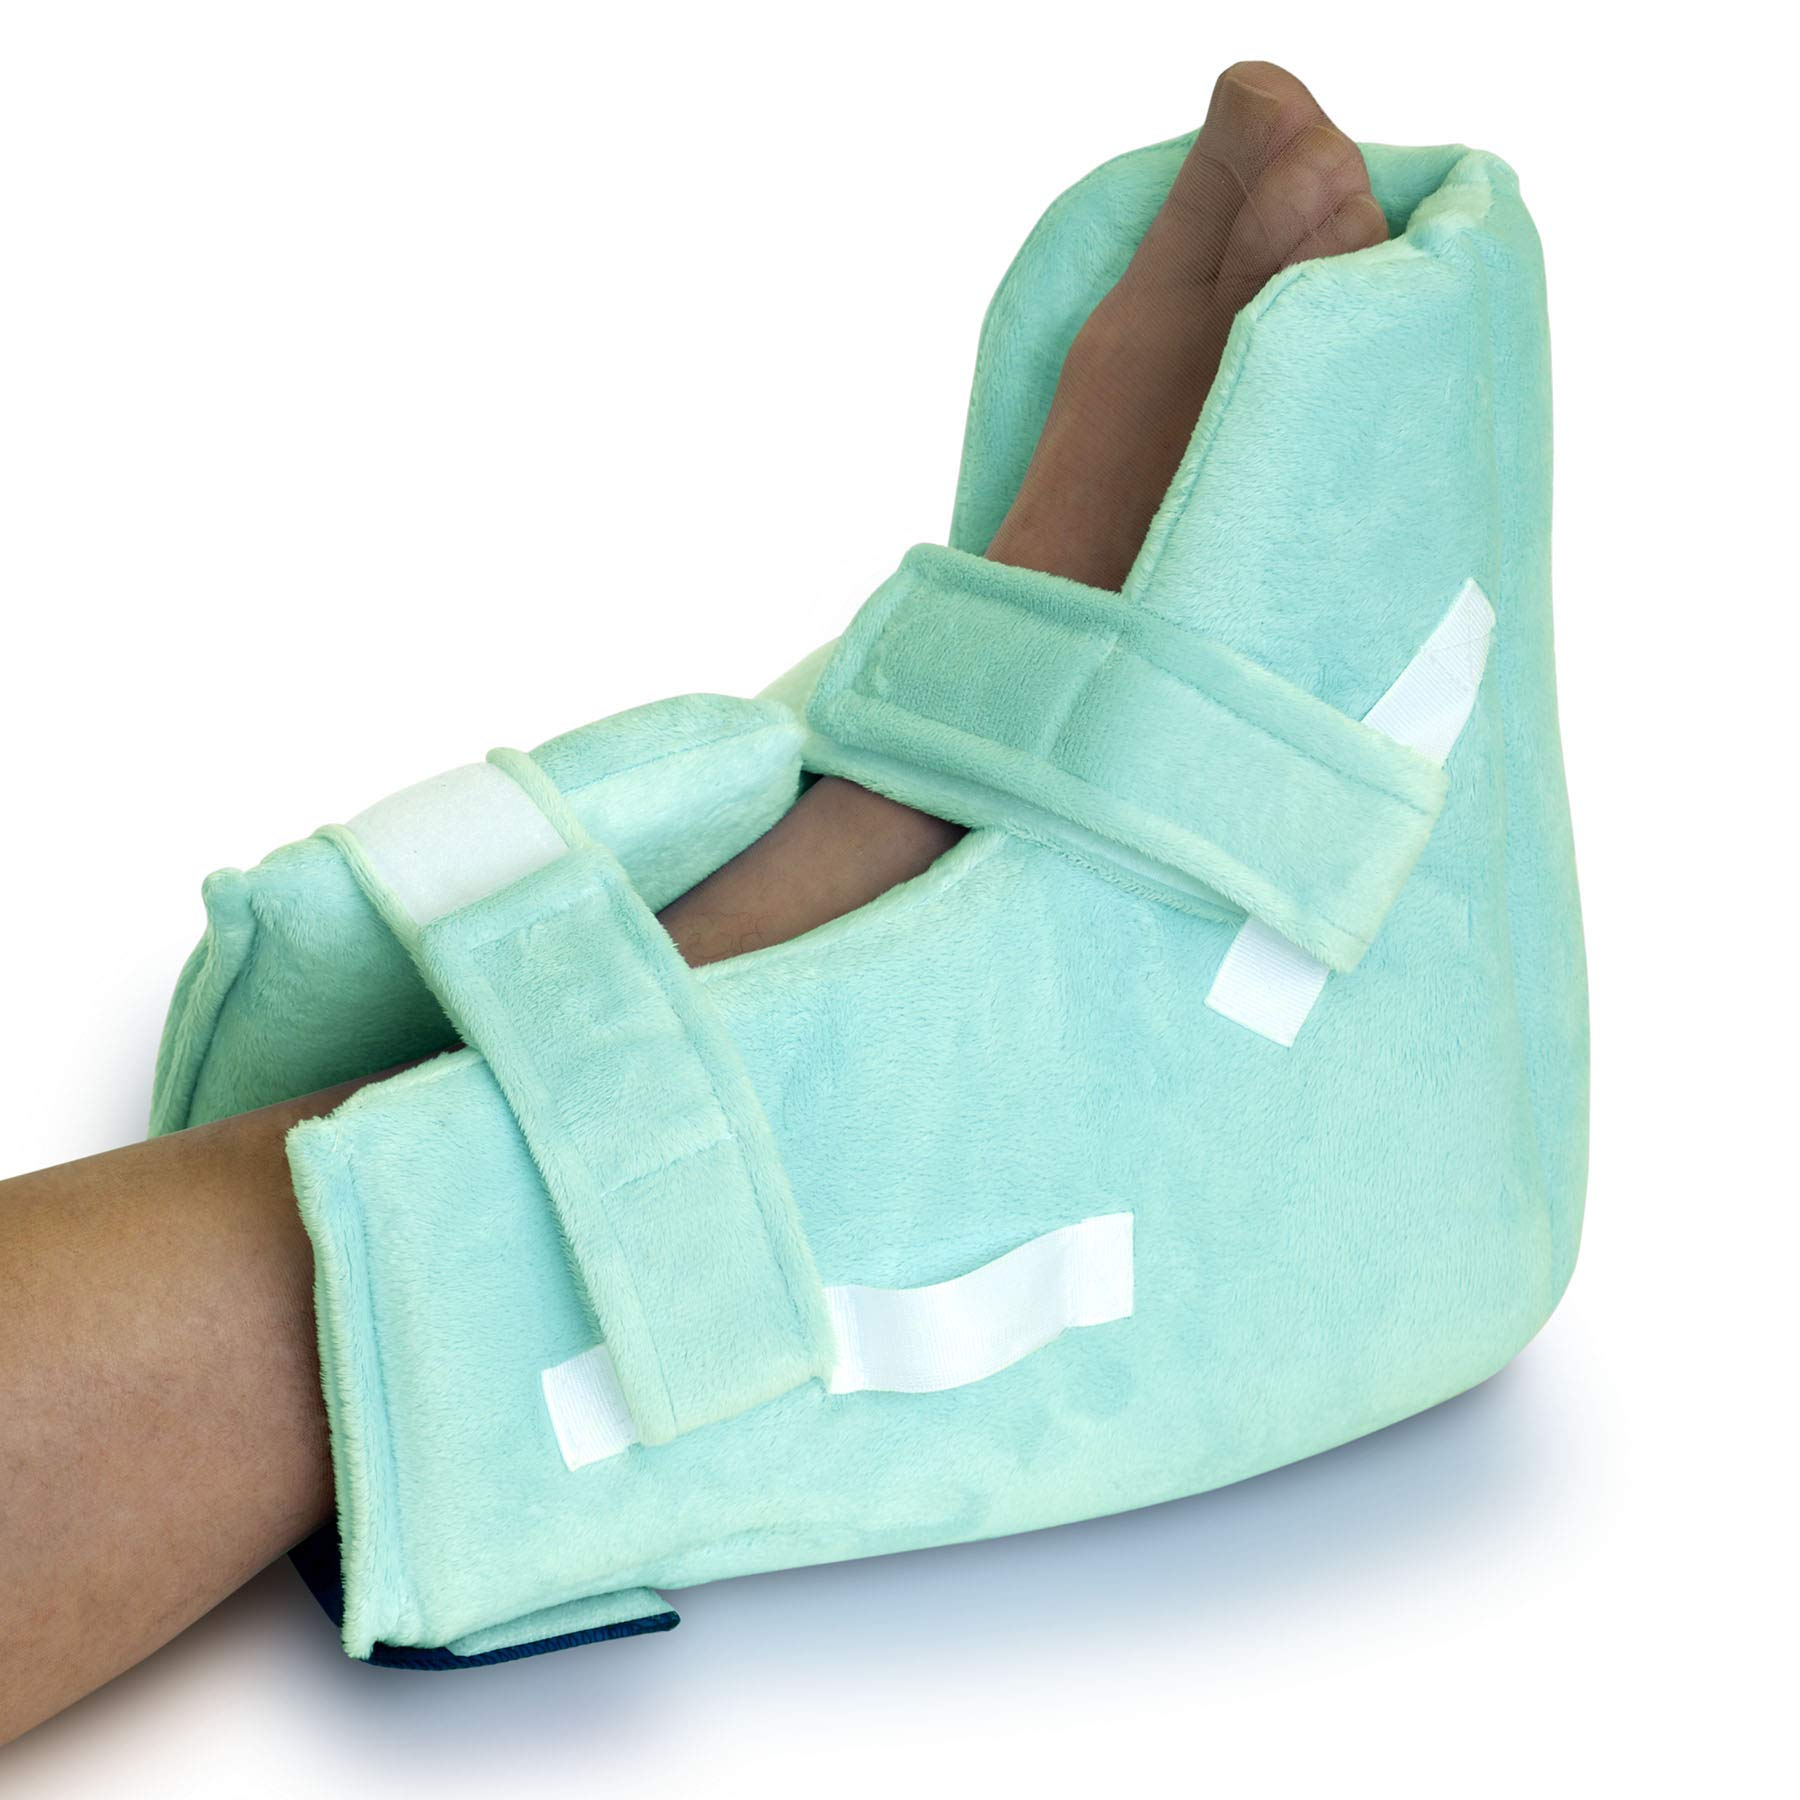 NYOrtho Boot Heel Protector Cushion - Pressure Relieving Pillow Boots with Suspension Boot Antimicrobial Fabric | Free Removable Heating/Cooling Gel Pack Included | Average Adult by NYORTHO